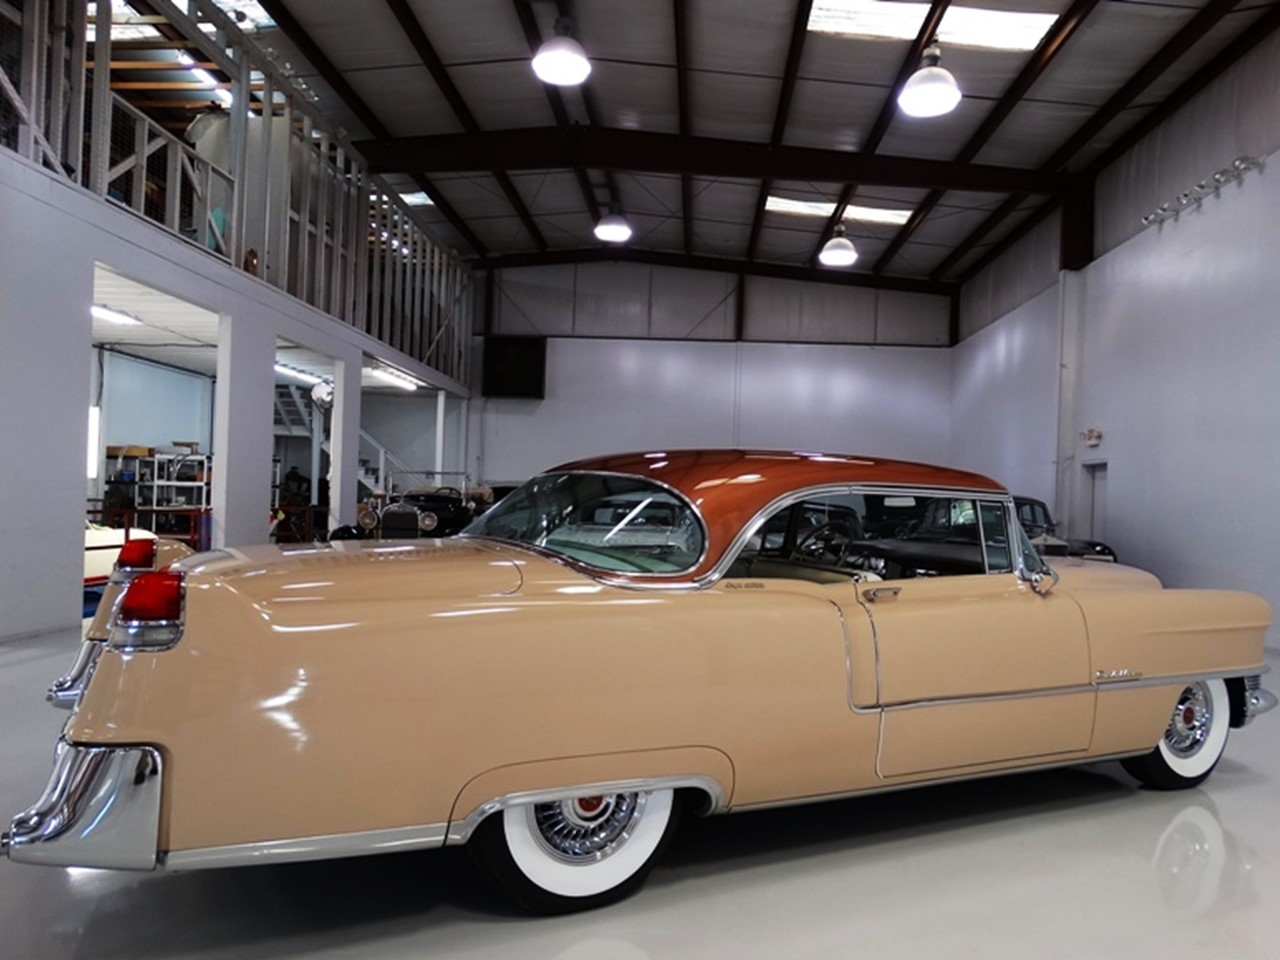 1955 Cadillac Series 62 Coupe deVille 11